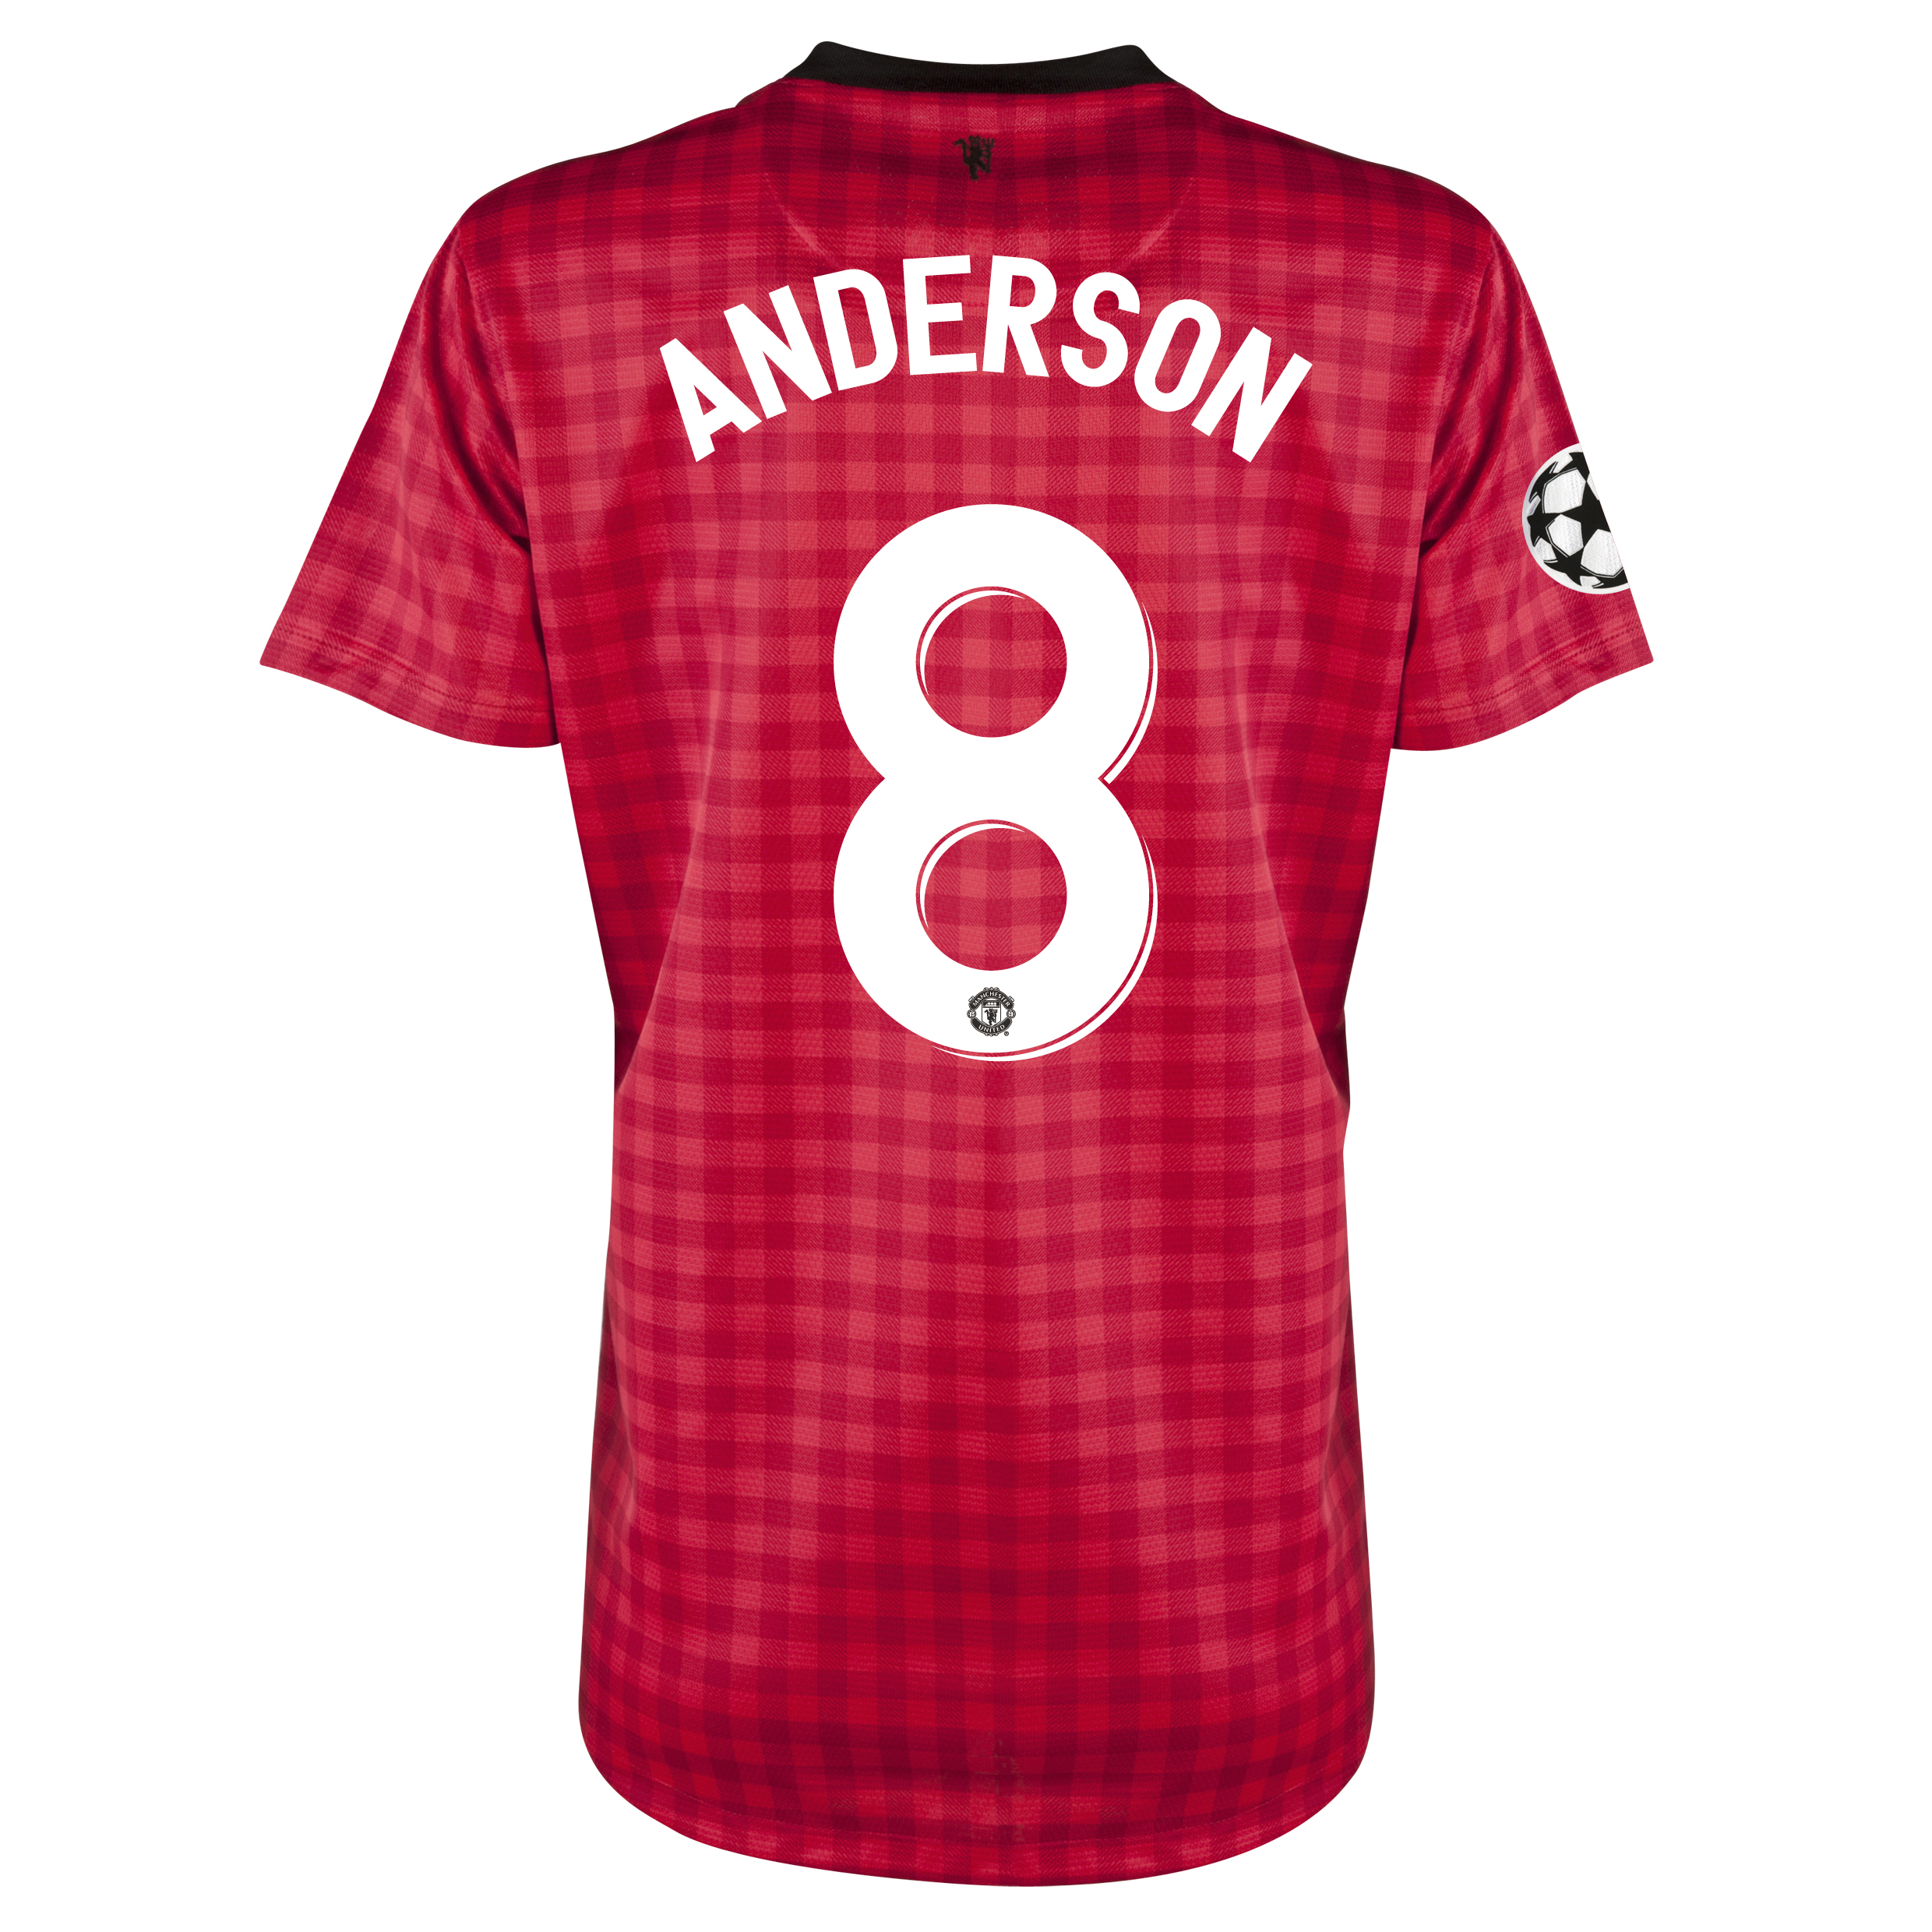 Man United UEFA Champions League Home Shirt 2012/13 - Womens with Anderson 8 printing